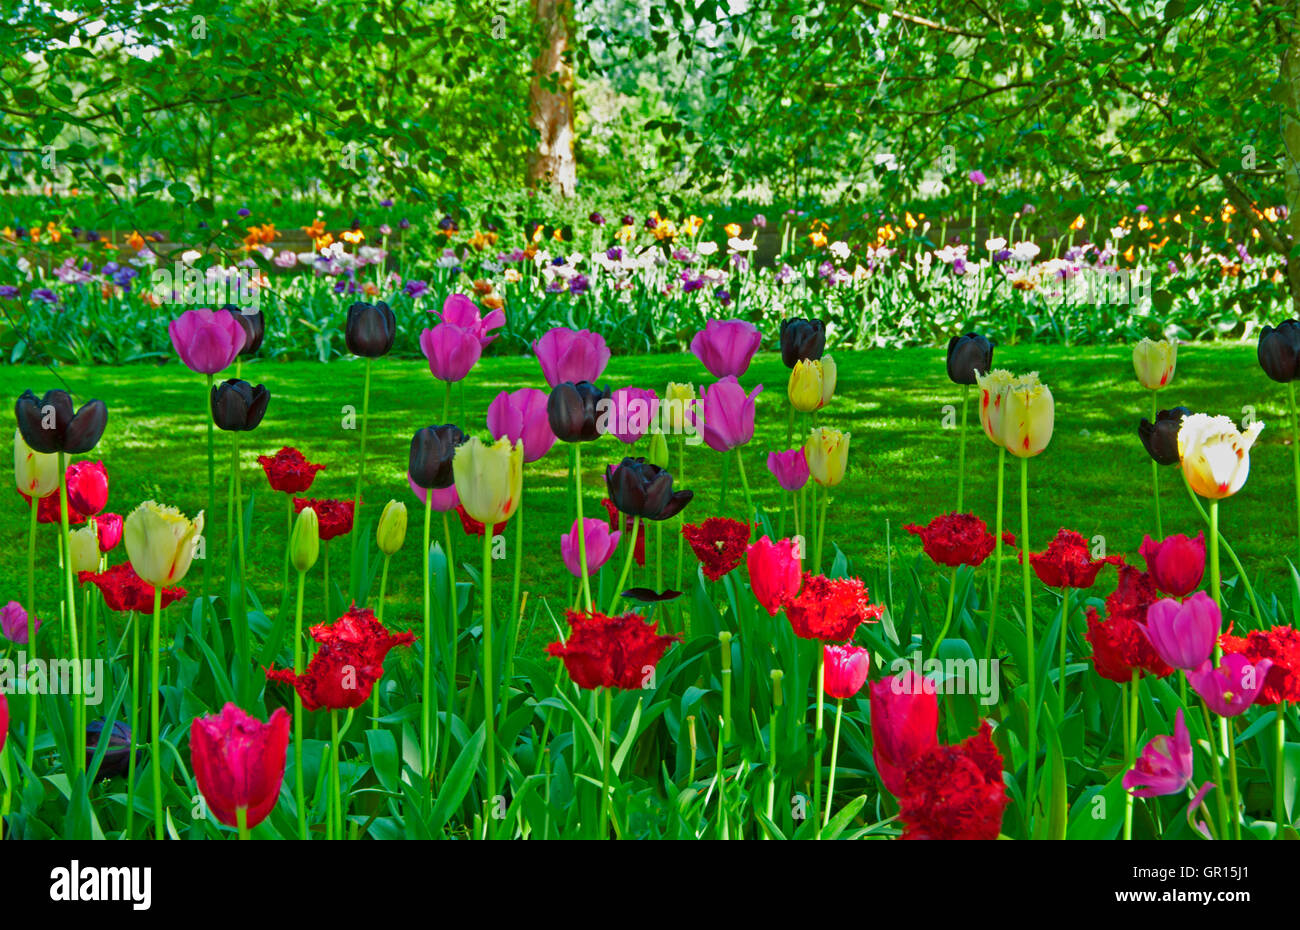 A view of the grounds with blooming tulips at Keukenhof Gardens, Lisse, Holland - Stock Image